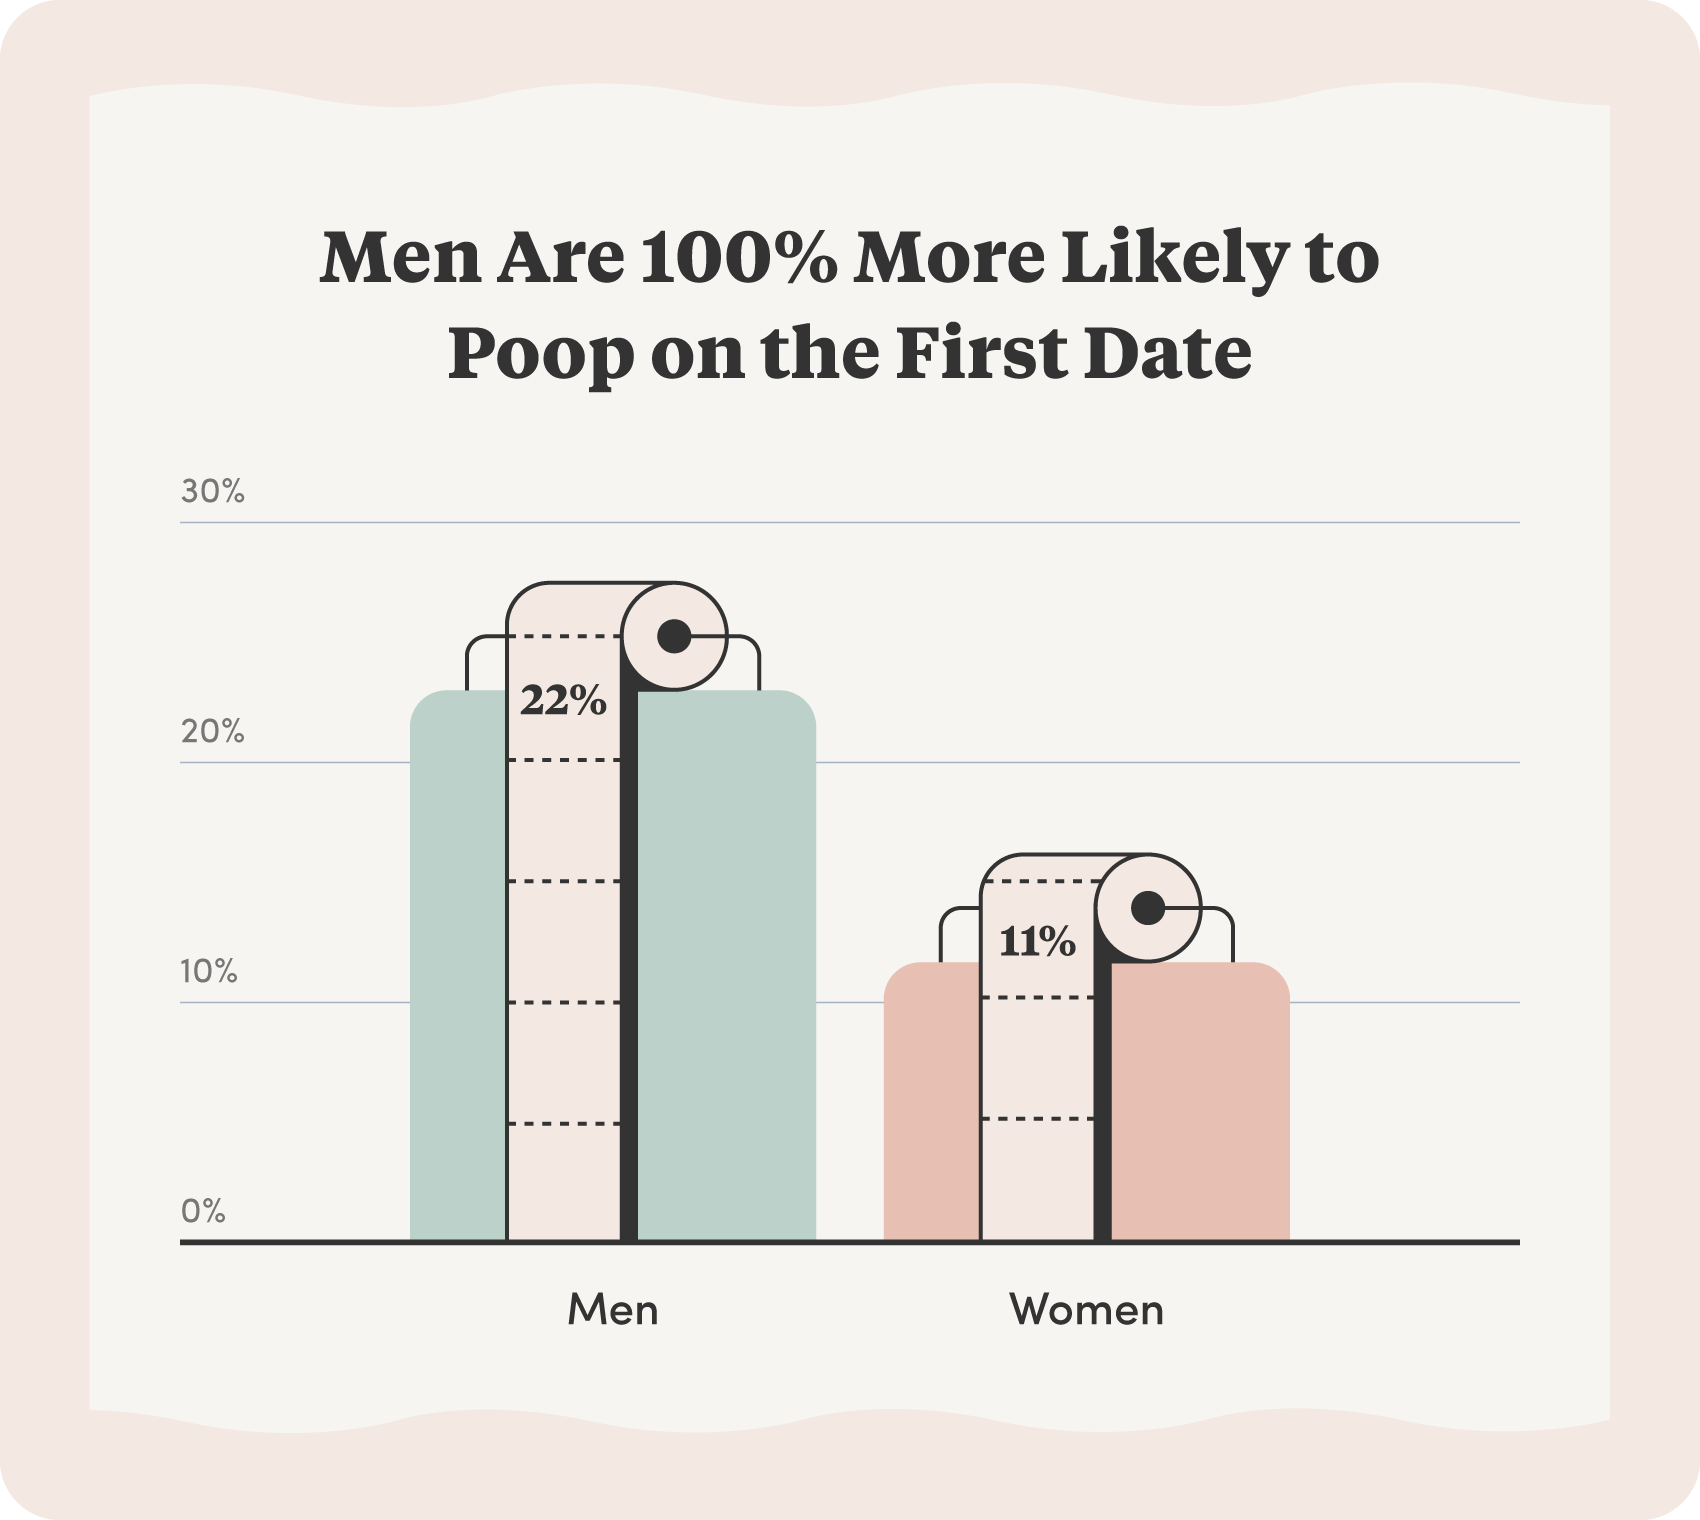 Survey results showing that men are 100% more likely to poop on the first date.